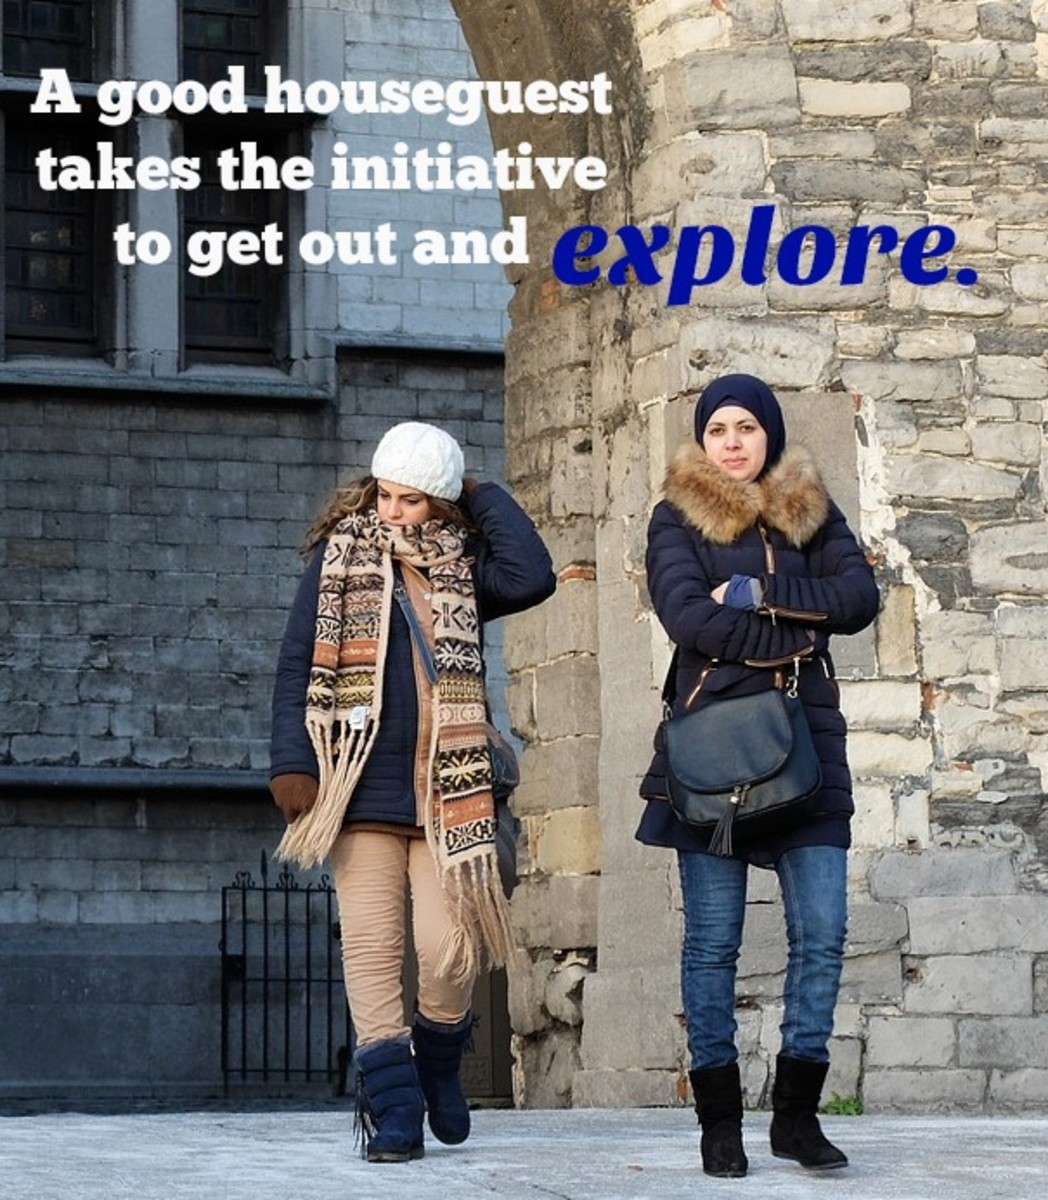 Don't expect your hosts to be your tour guides. Get out of the house and seek your own adventures!